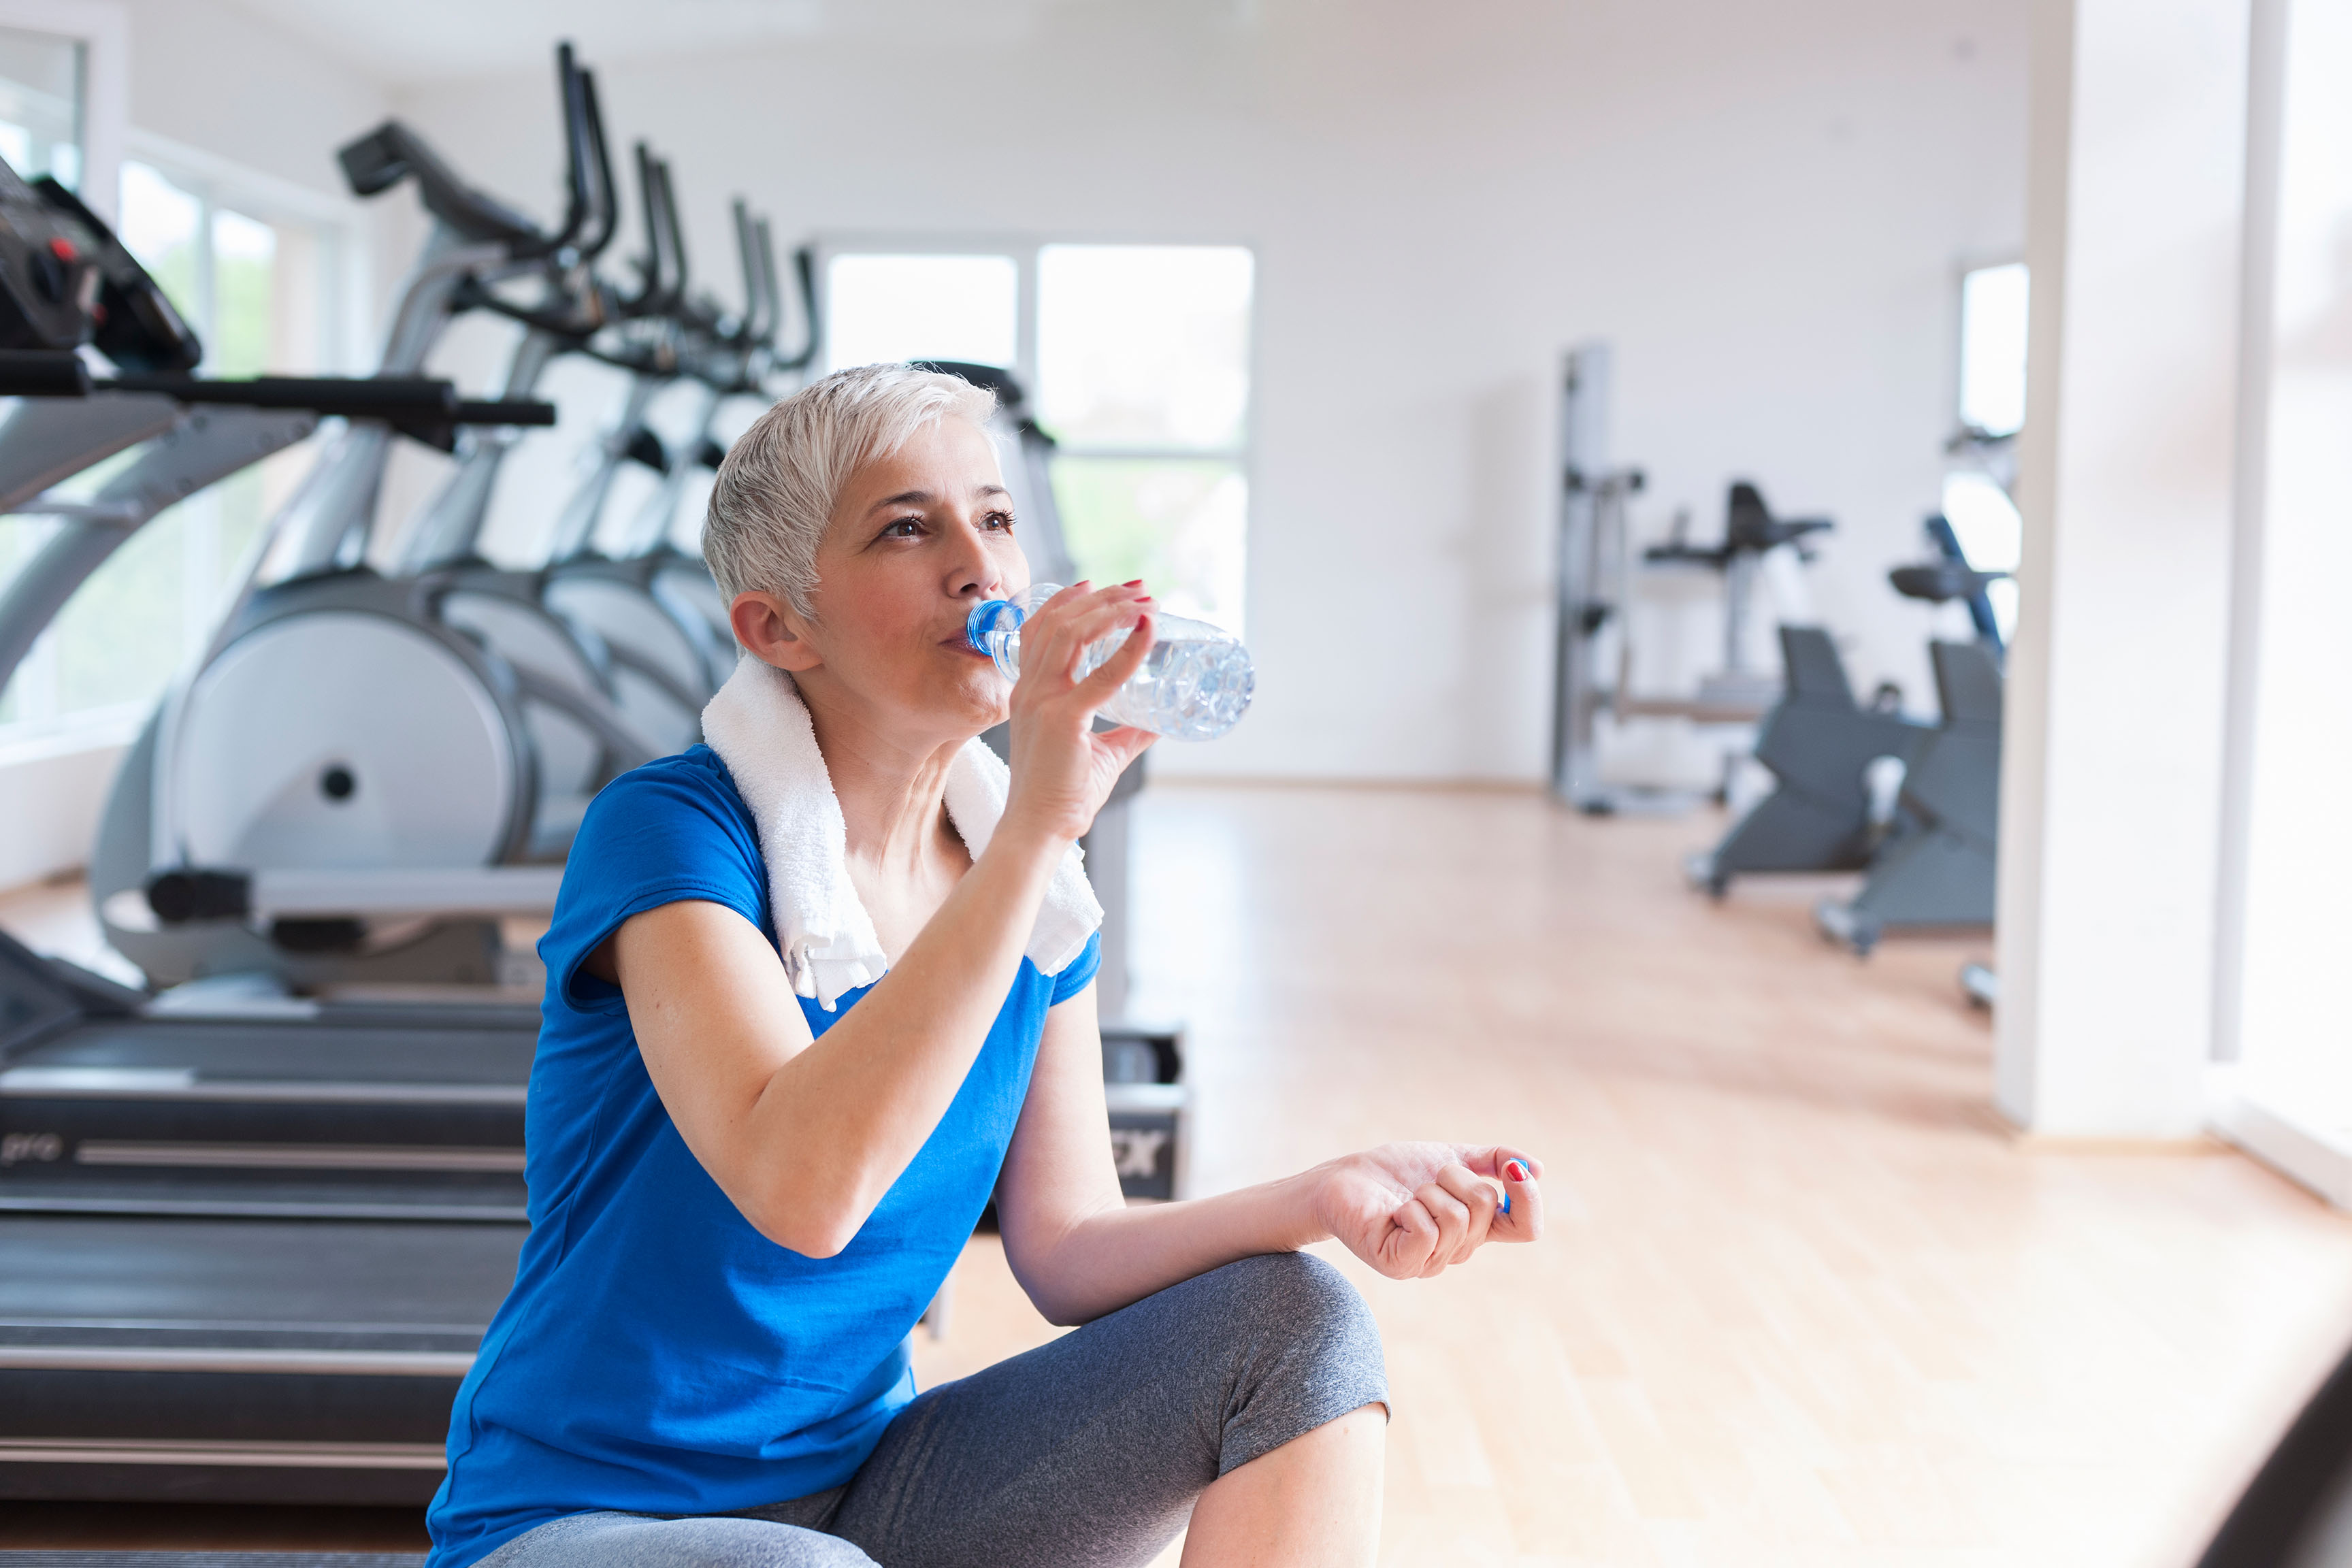 Patient drinking water in fitness room